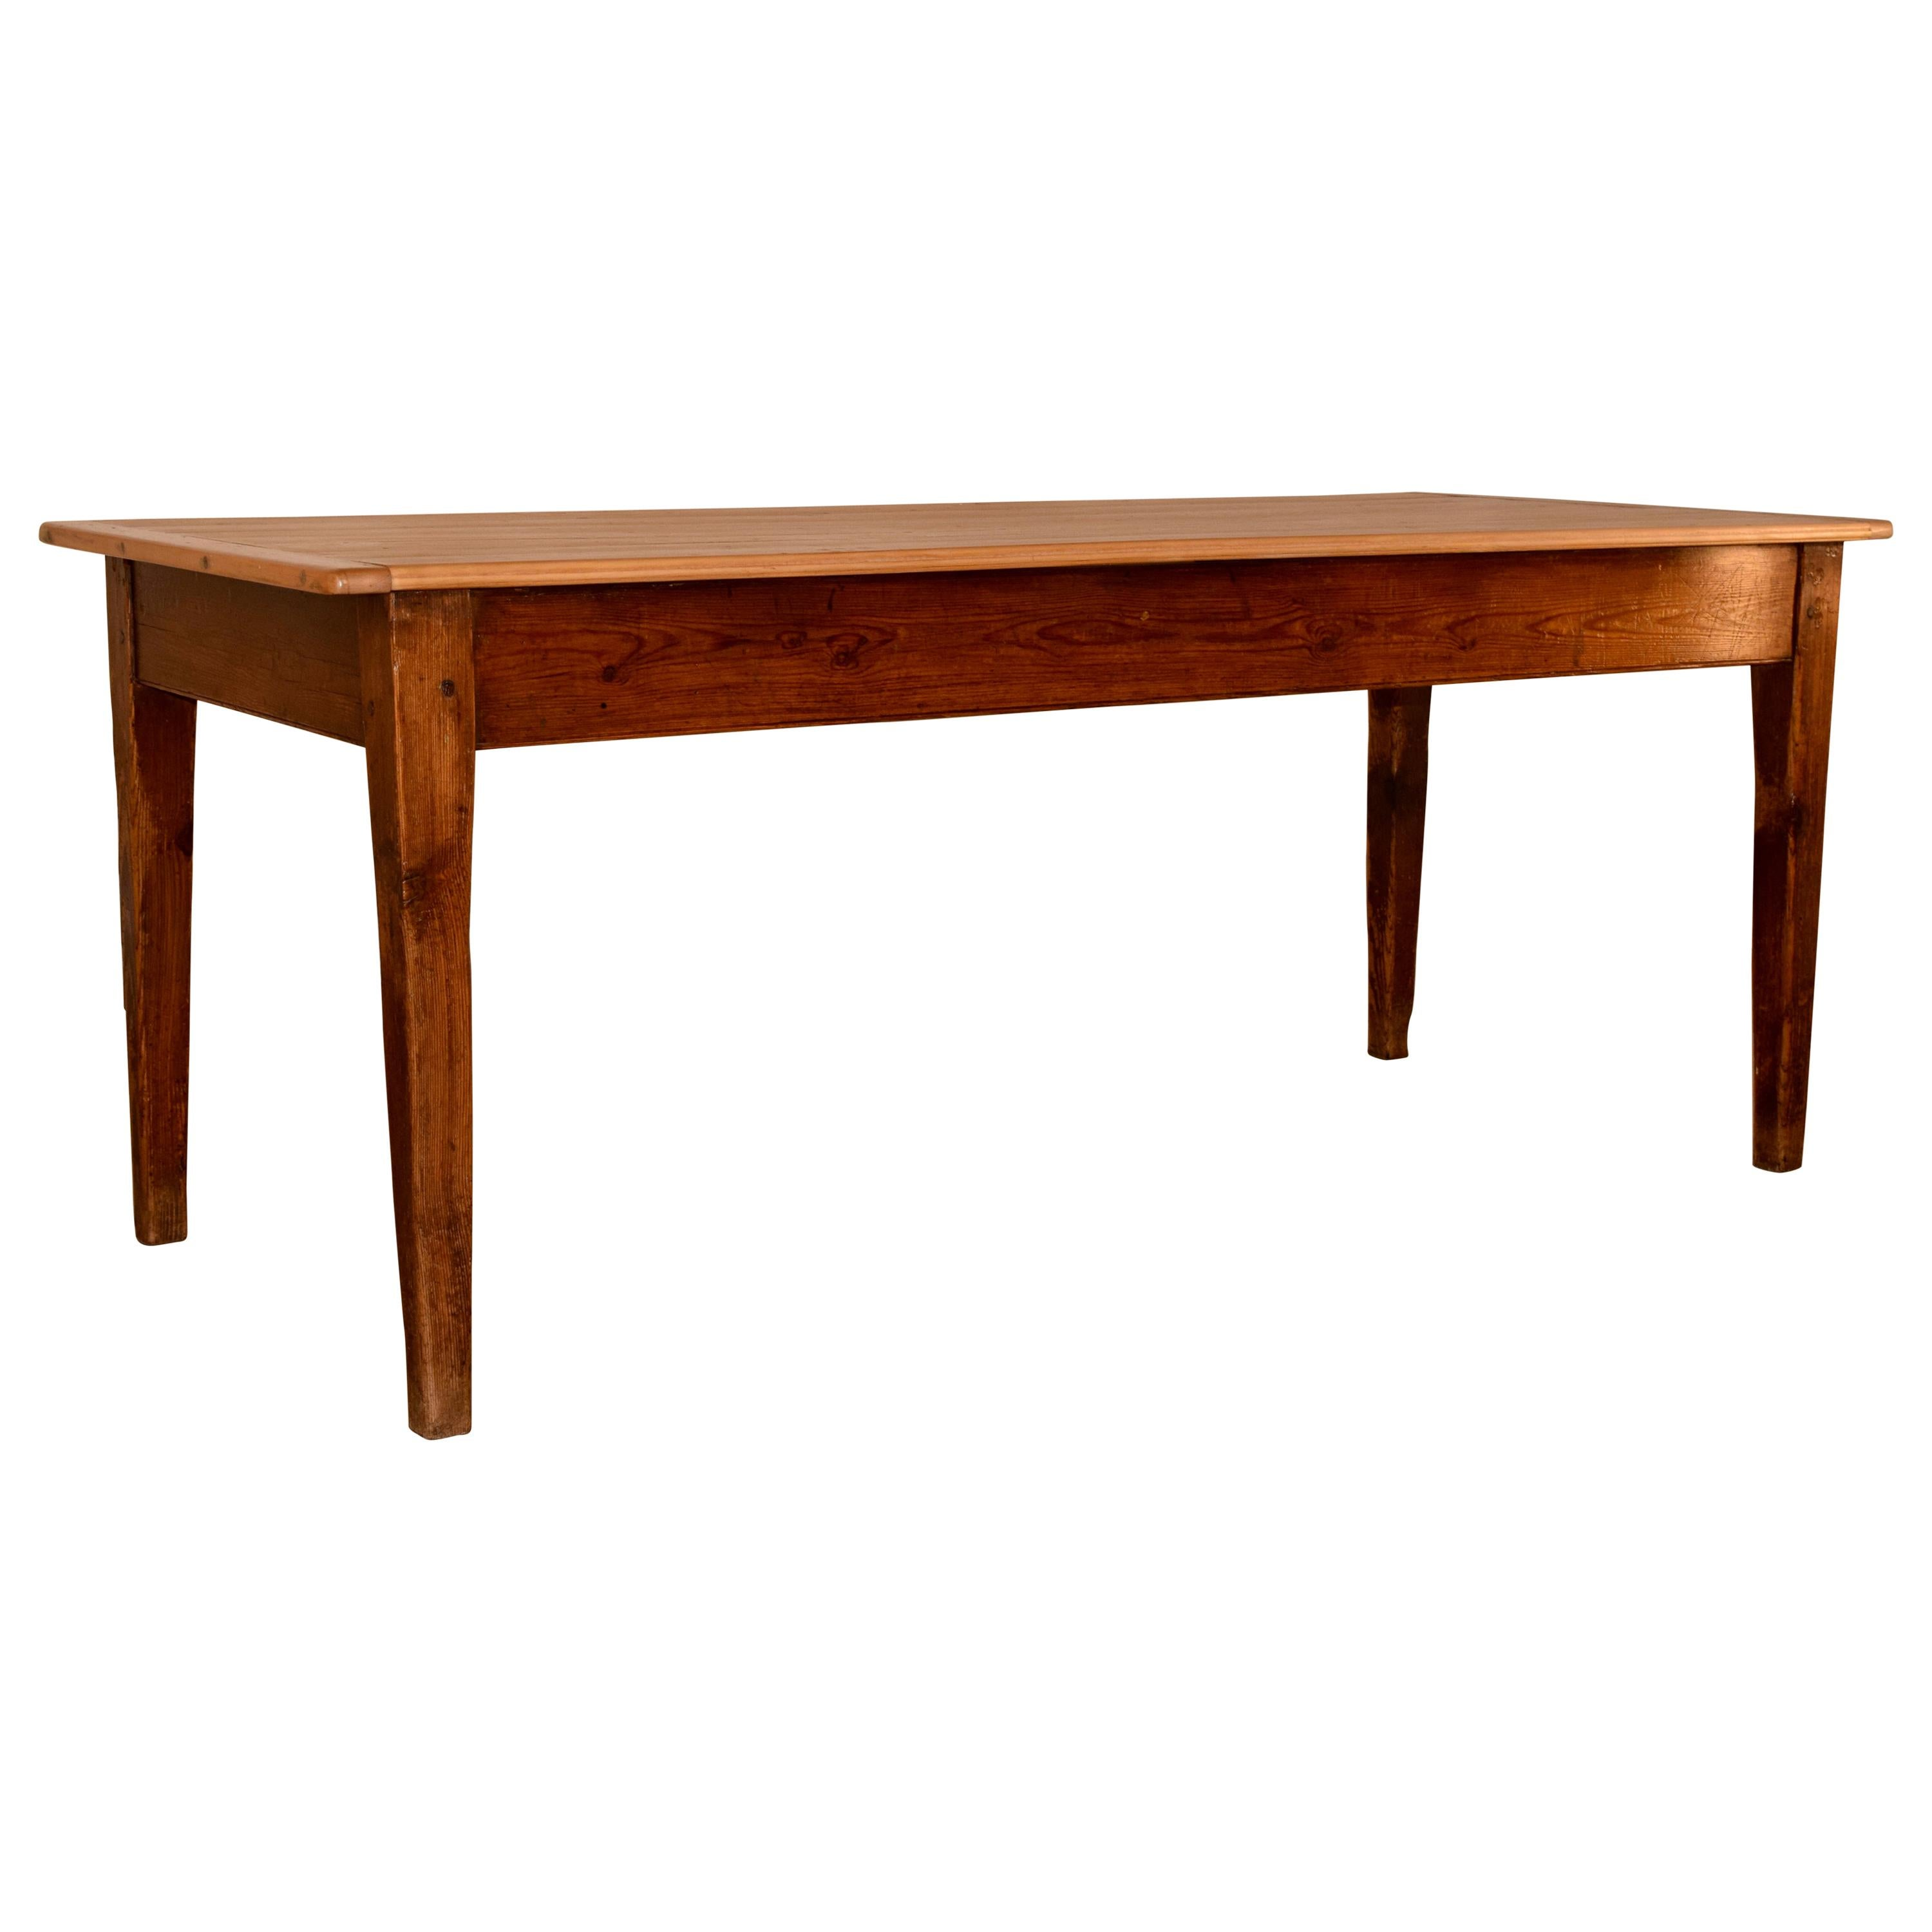 19th Century French Pine Farm Table